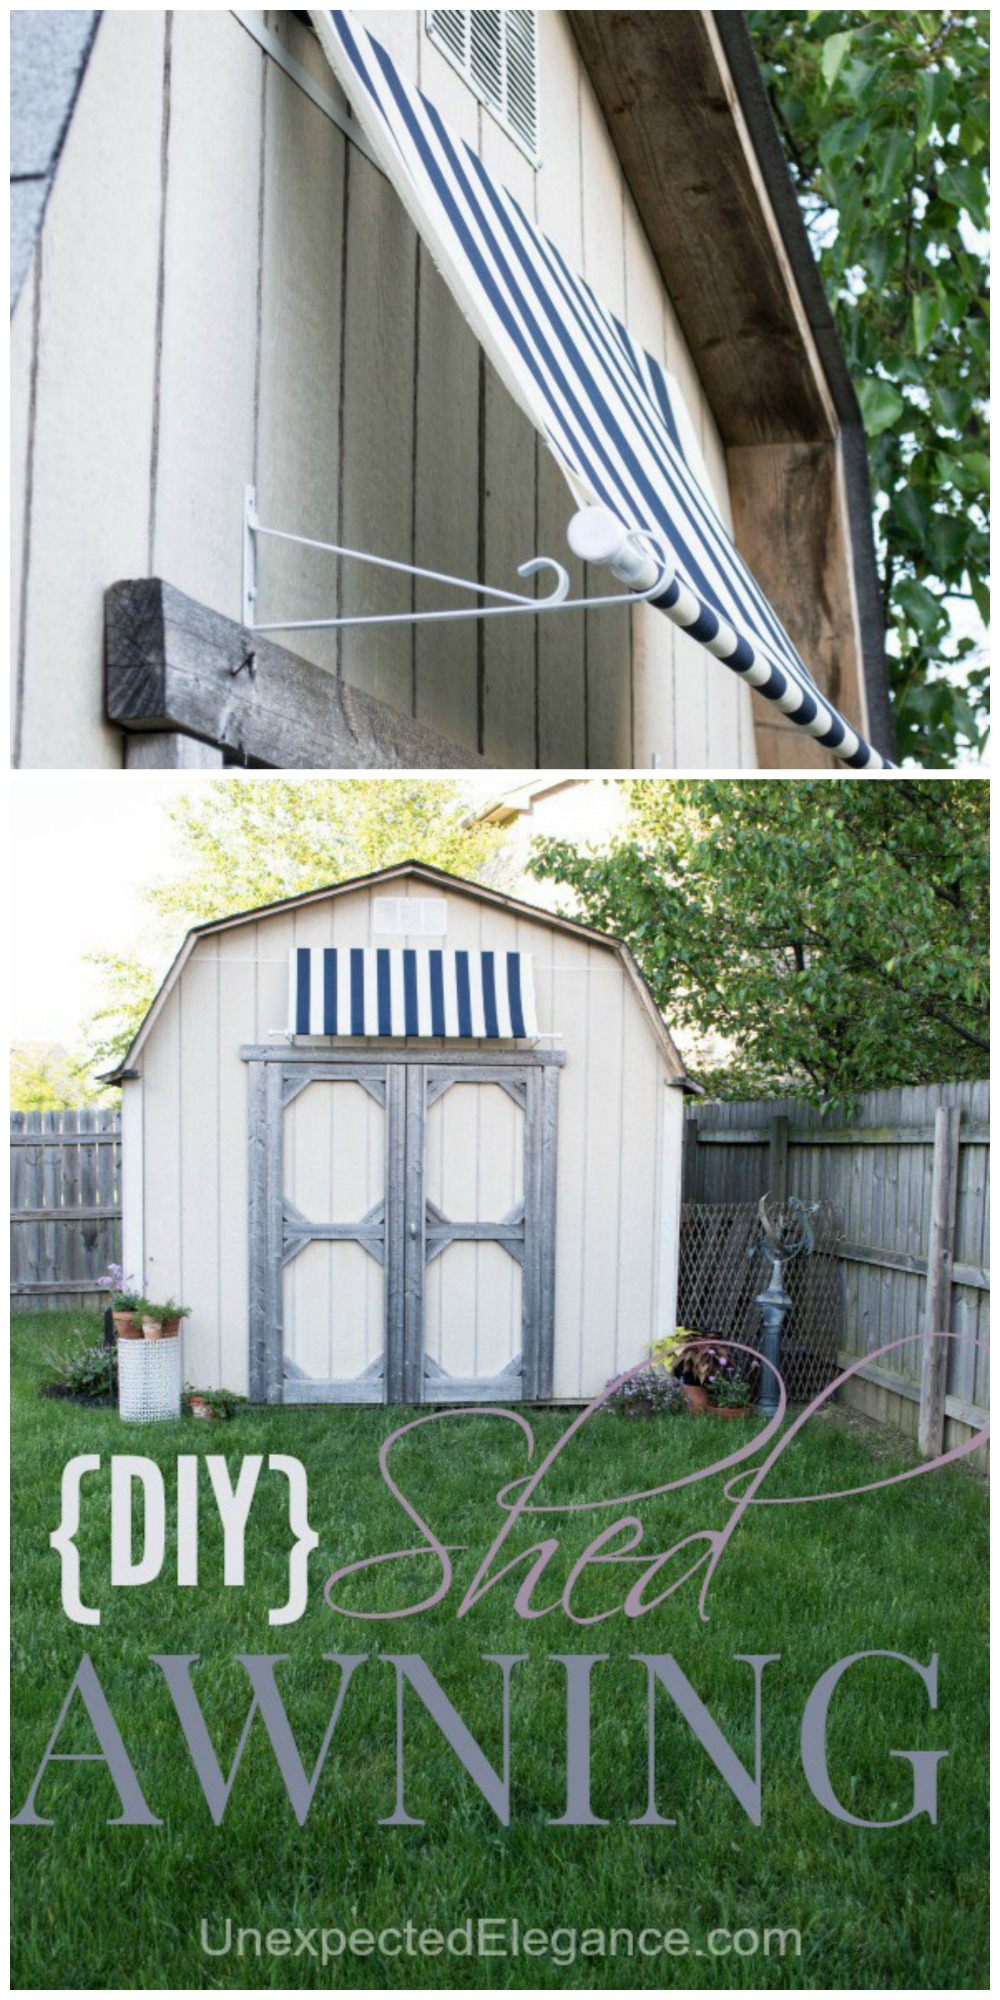 DIY Shed Awning {Quick and EASY} | Unexpected Elegance